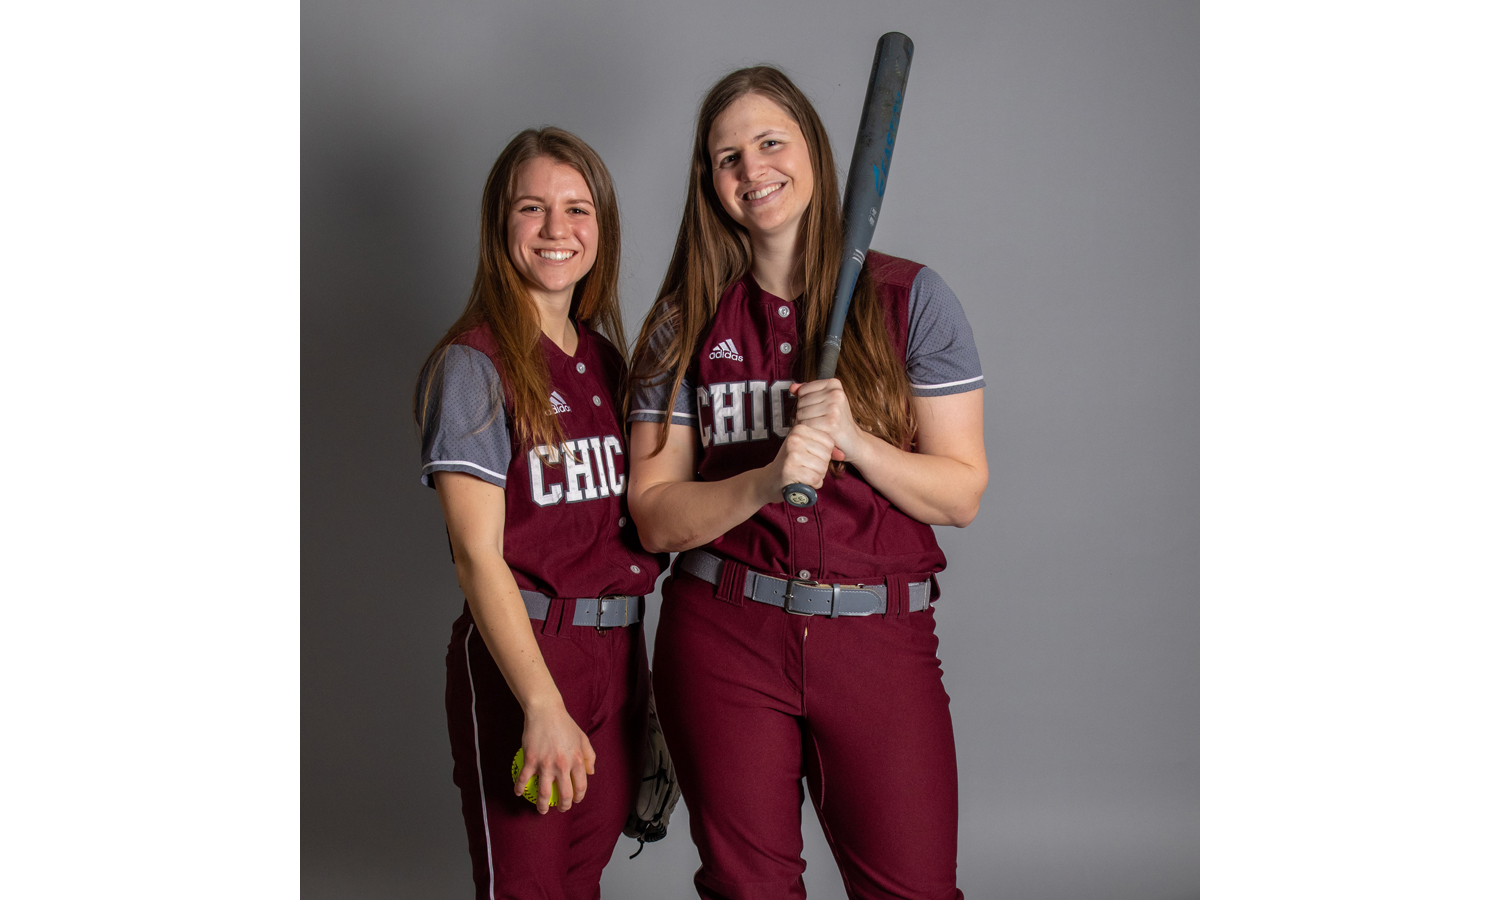 UChicago Softball Class of 2020